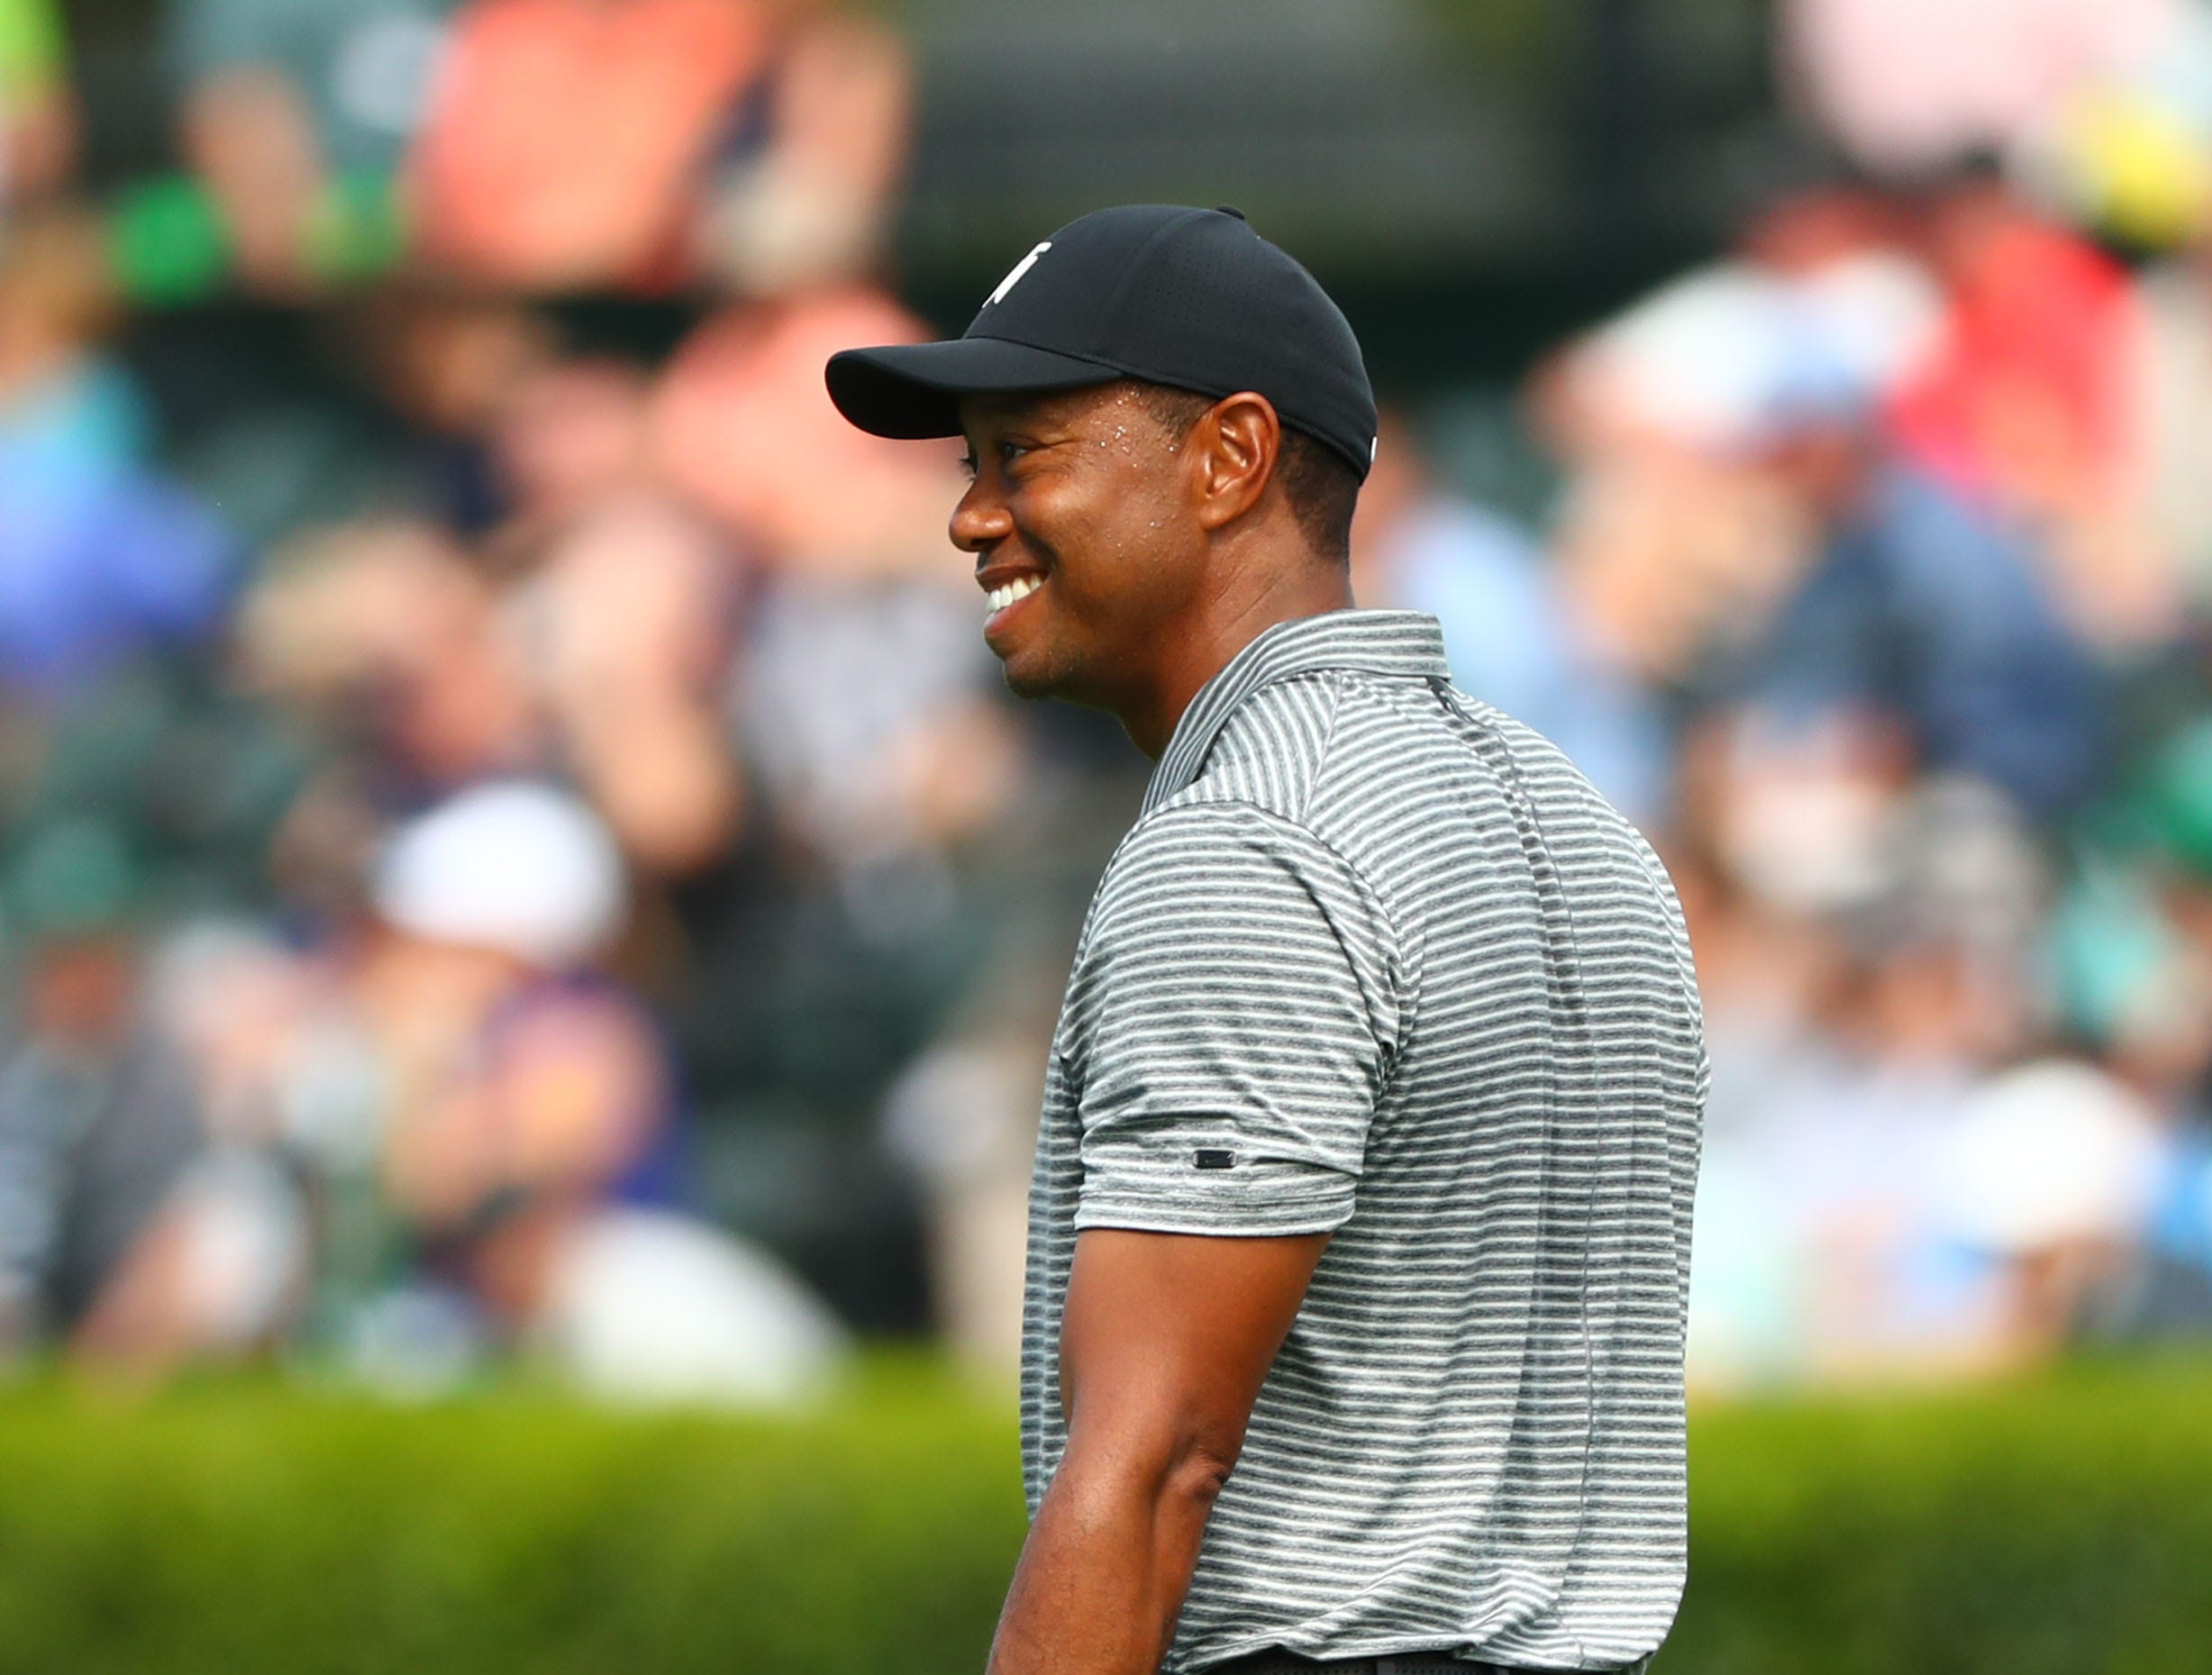 Apr 9, 2019; Augusta, GA, USA; Tiger Woods leaves the practice facility during a practice round for The Masters golf tournament at Augusta National Golf Club. Mandatory Credit: Rob Schumacher-USA TODAY Sports